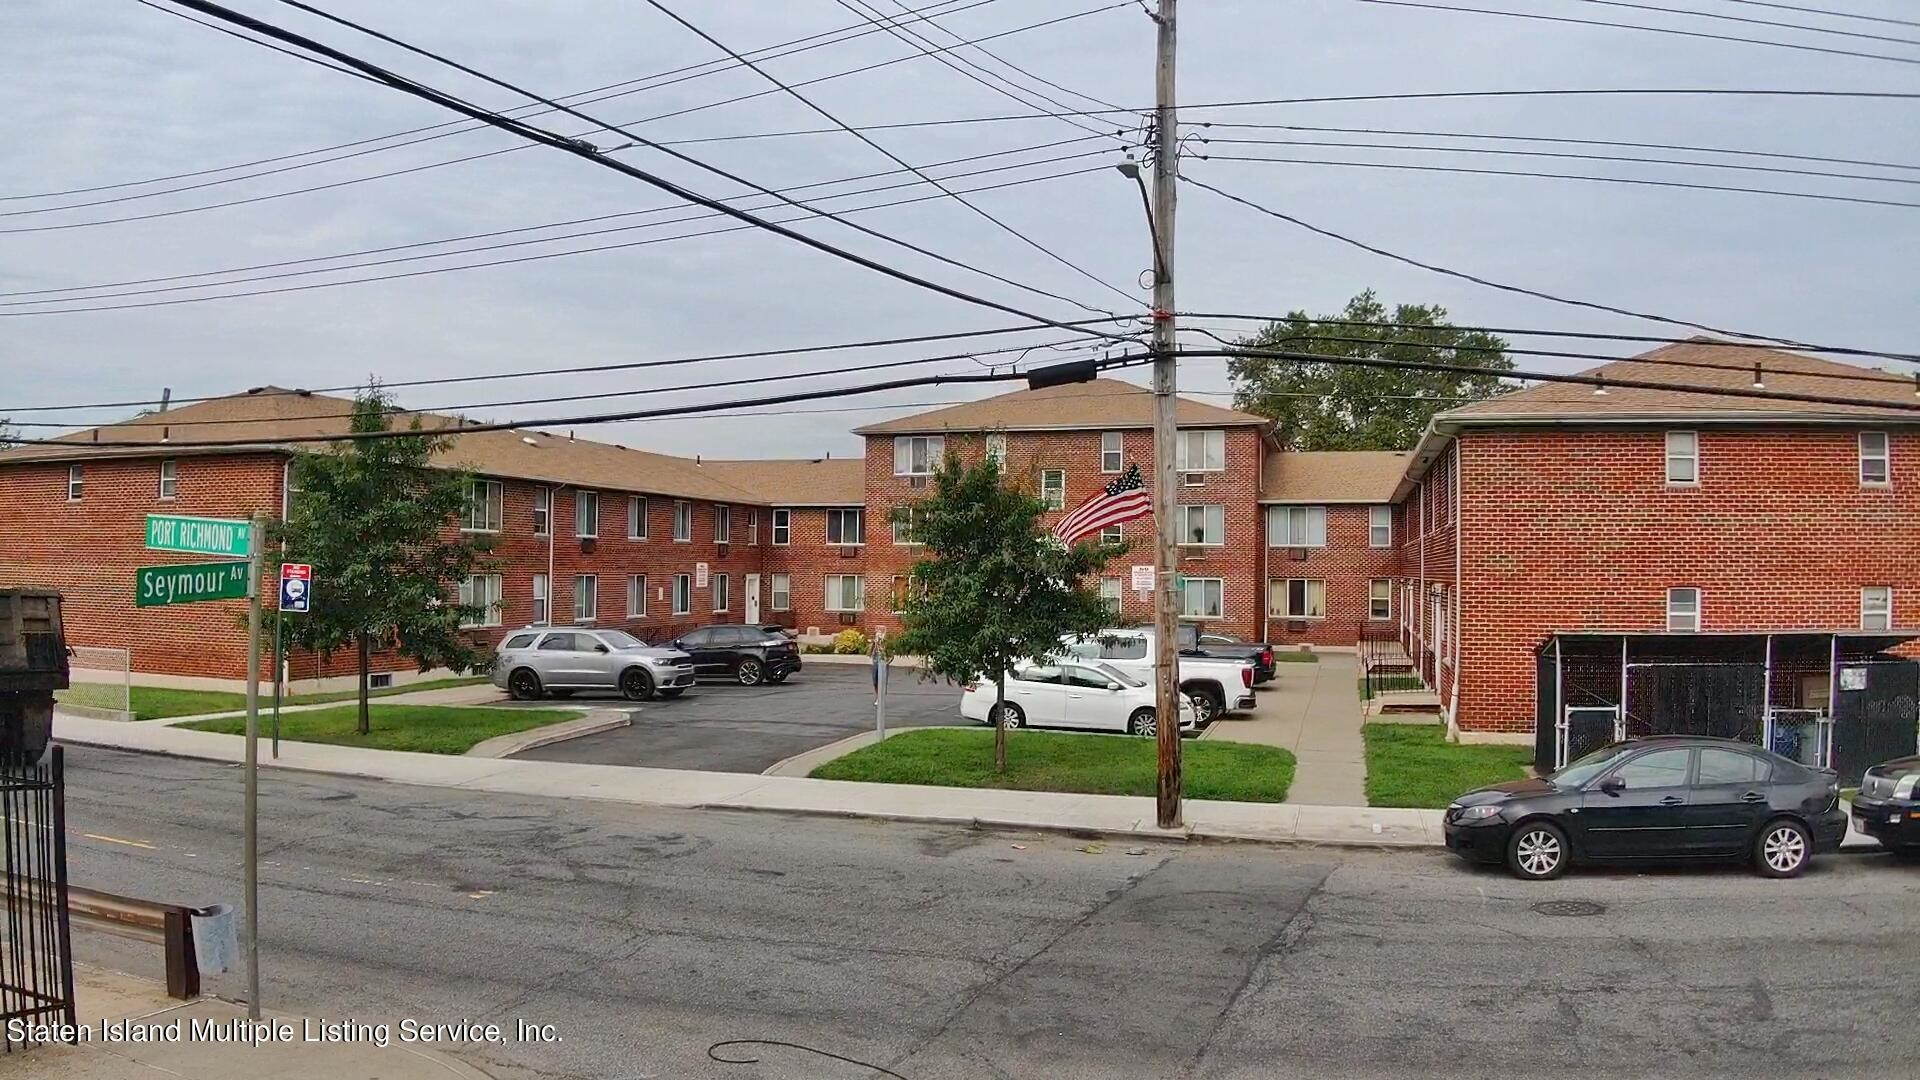 2-Story Multi-Family Home In Staten Island